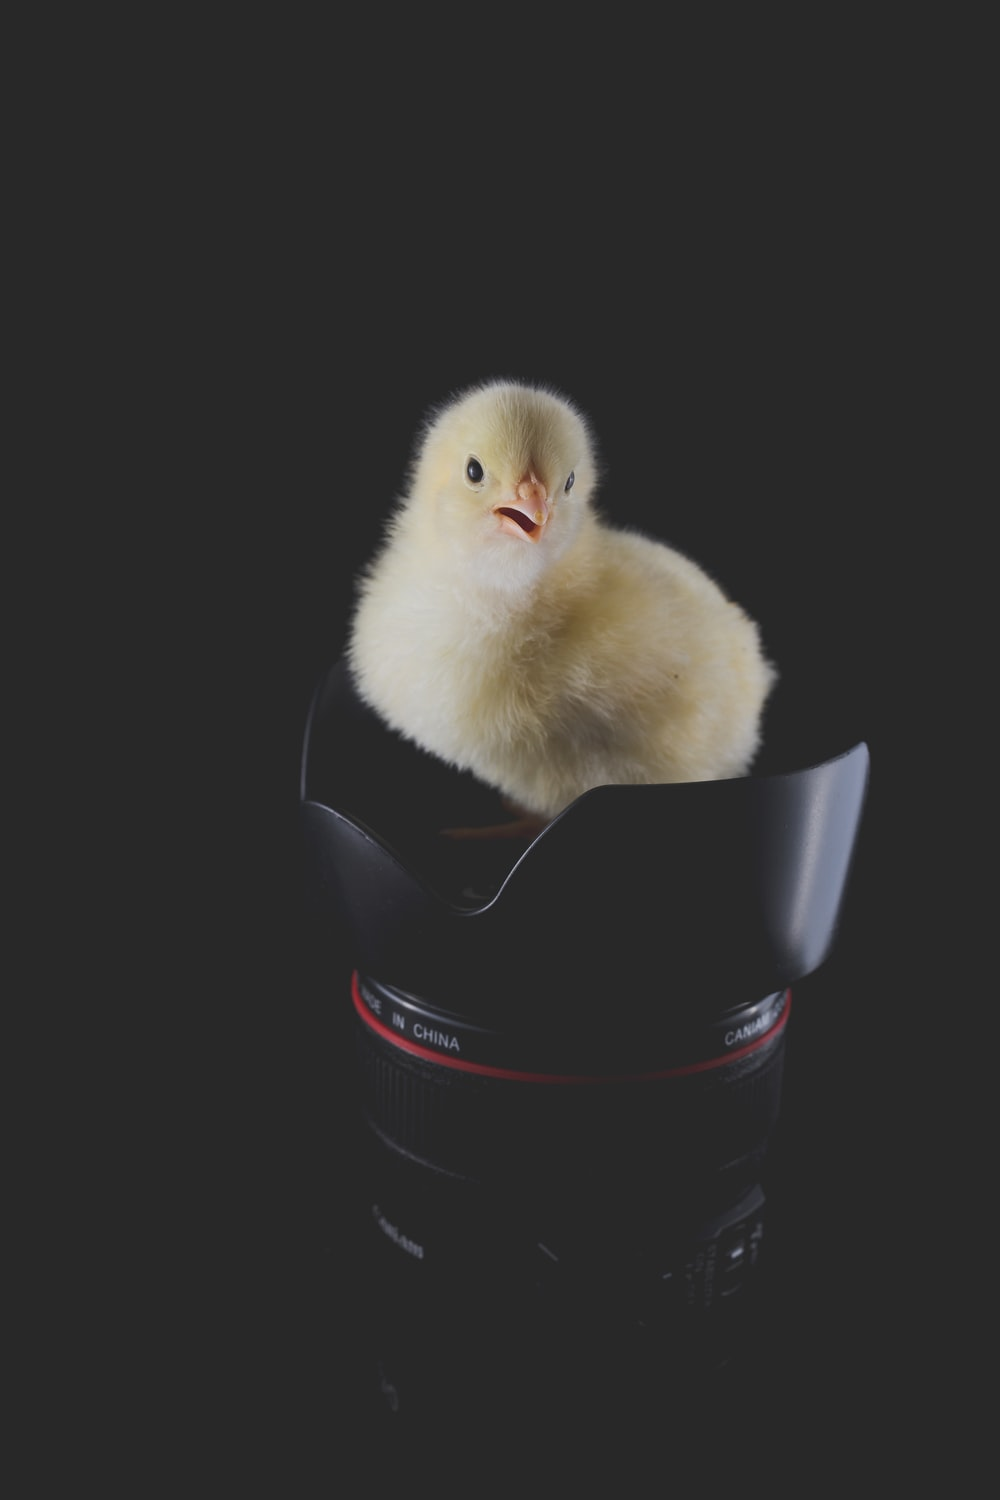 chick on telephoto lens